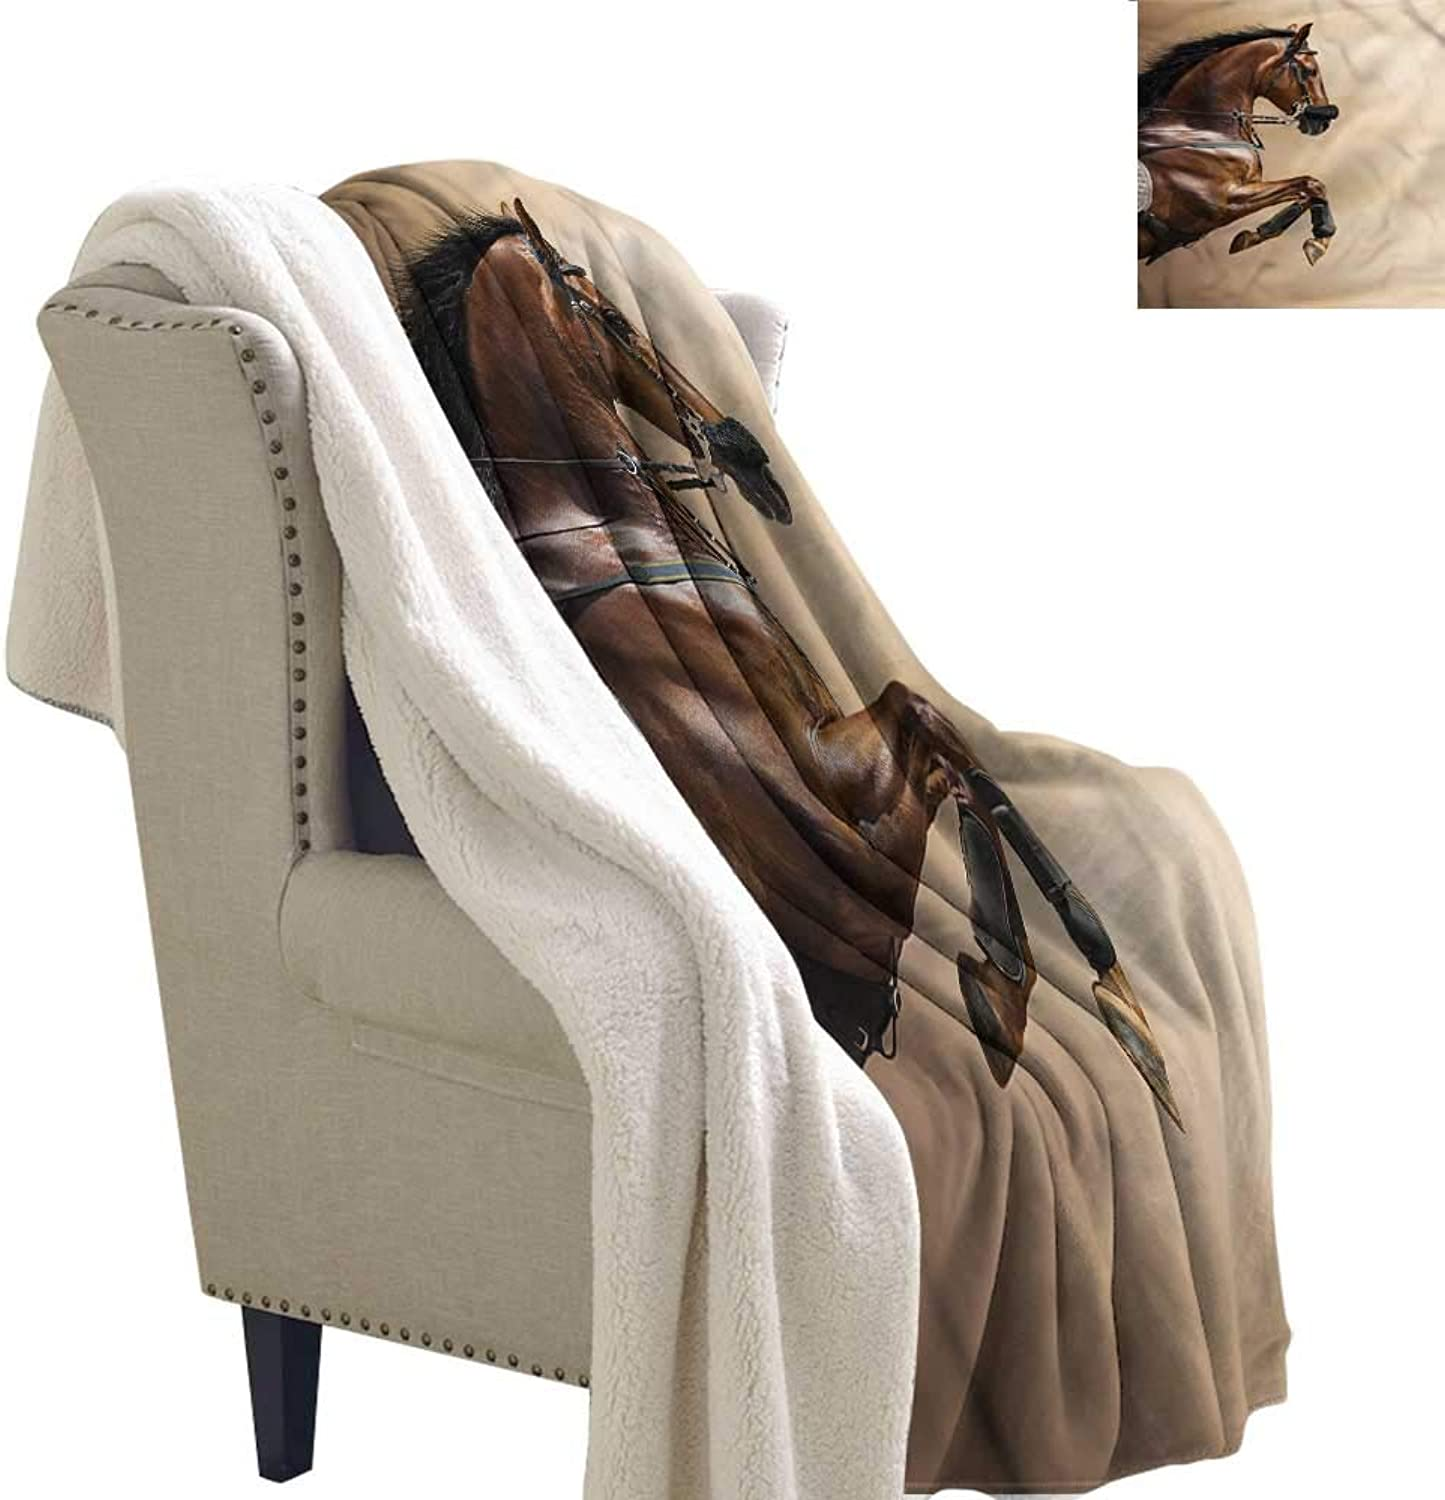 AndyTours Outdoor Blanket Horses Show Animals with a Leash Autumn and Winter Thick Blanket W59 x L31